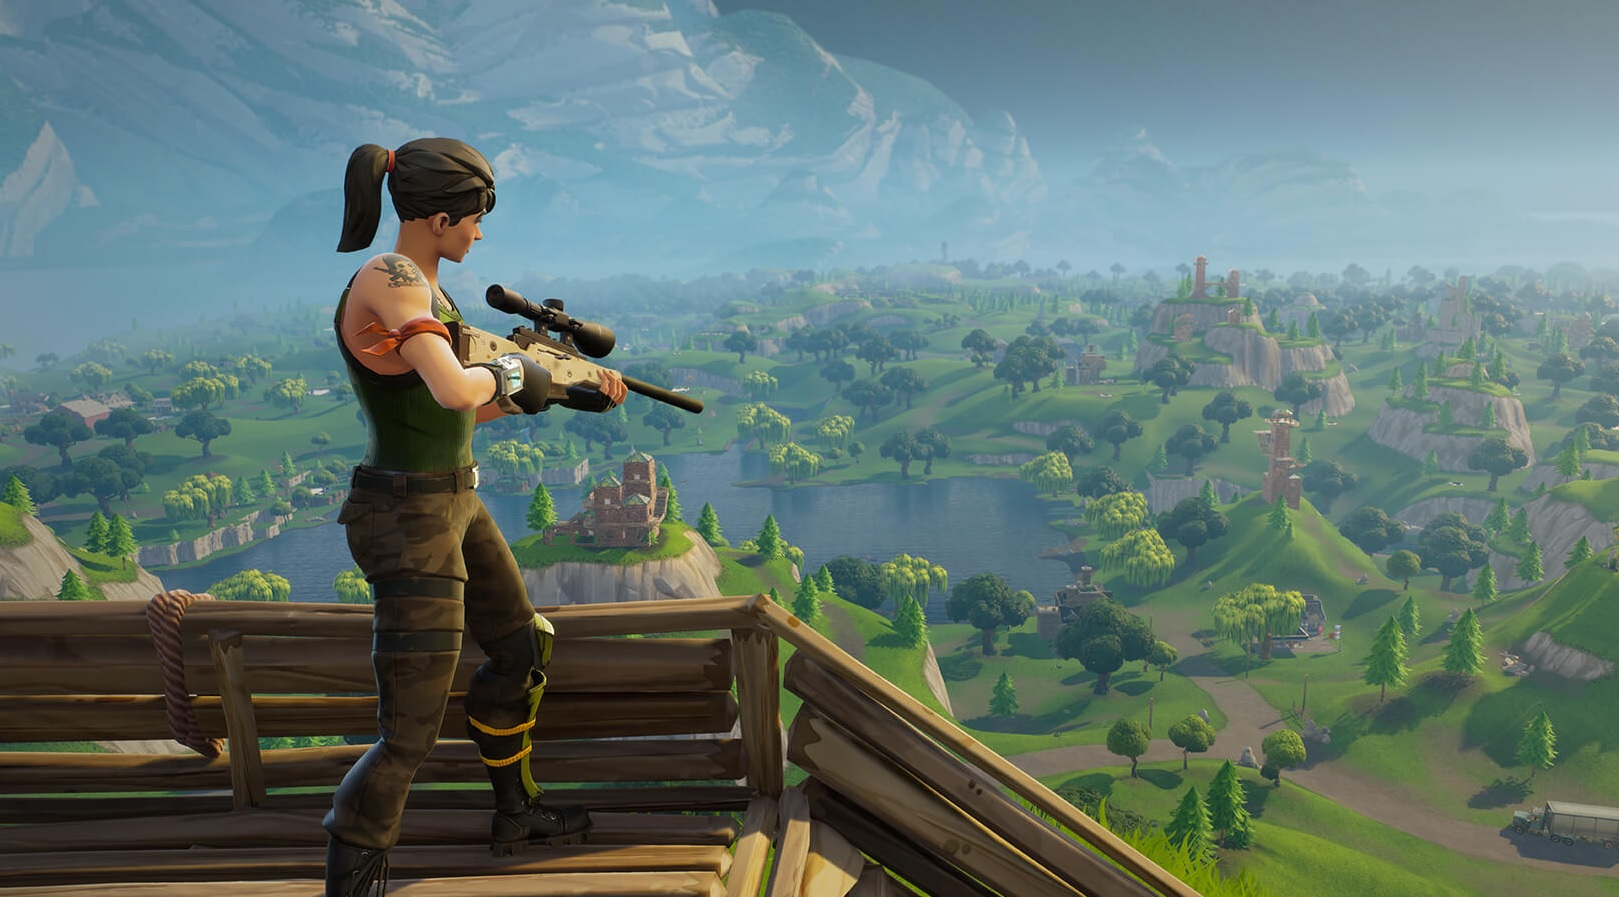 How Fortnite leveled up, broke records, and changed gaming